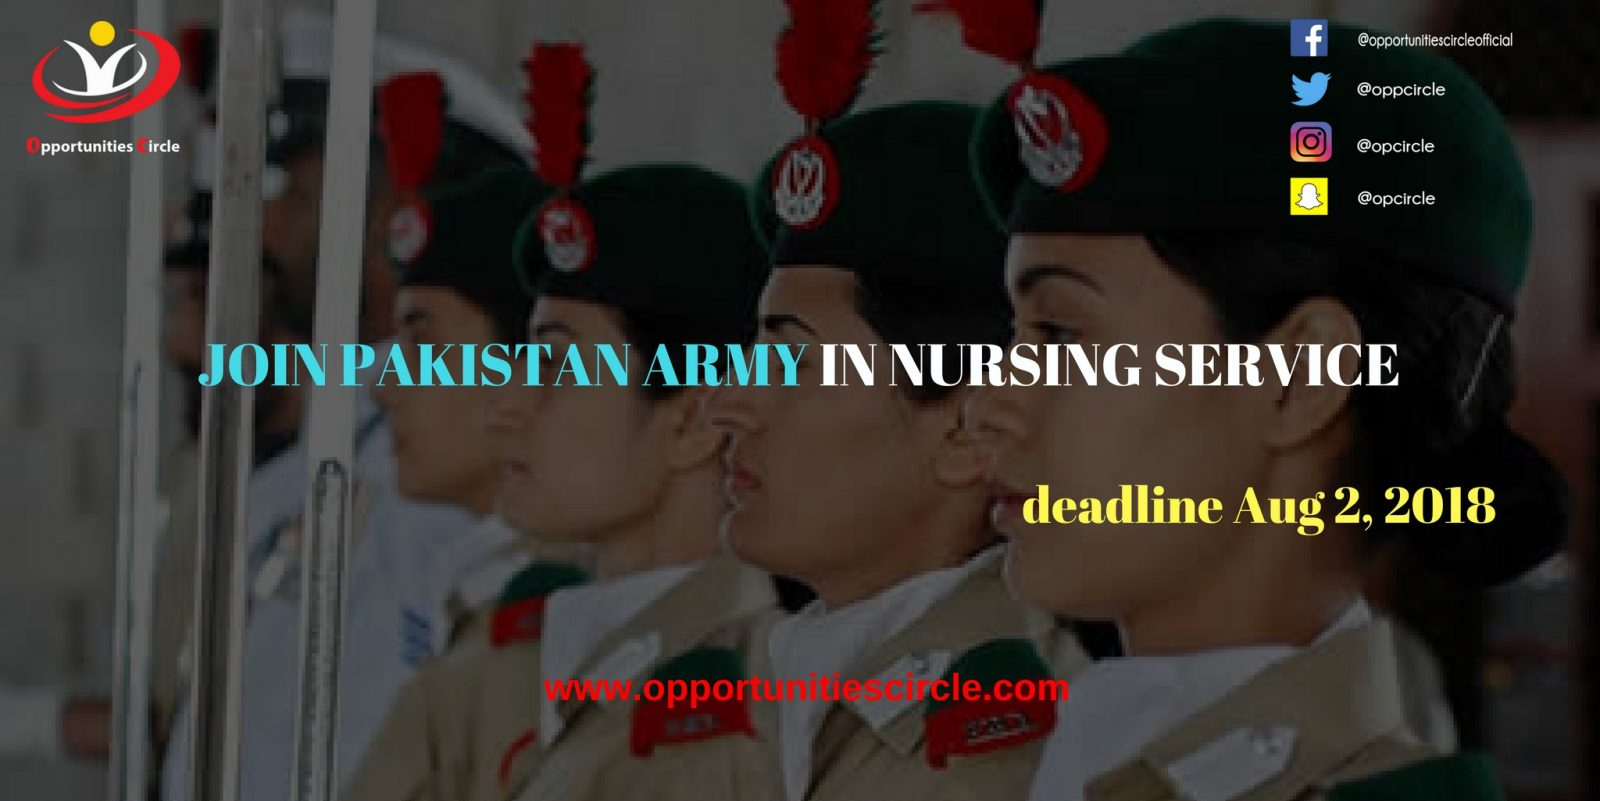 JOIN PAKISTAN ARMY IN NURSING SERVICE - JOIN PAKISTAN ARMY IN NURSING SERVICE